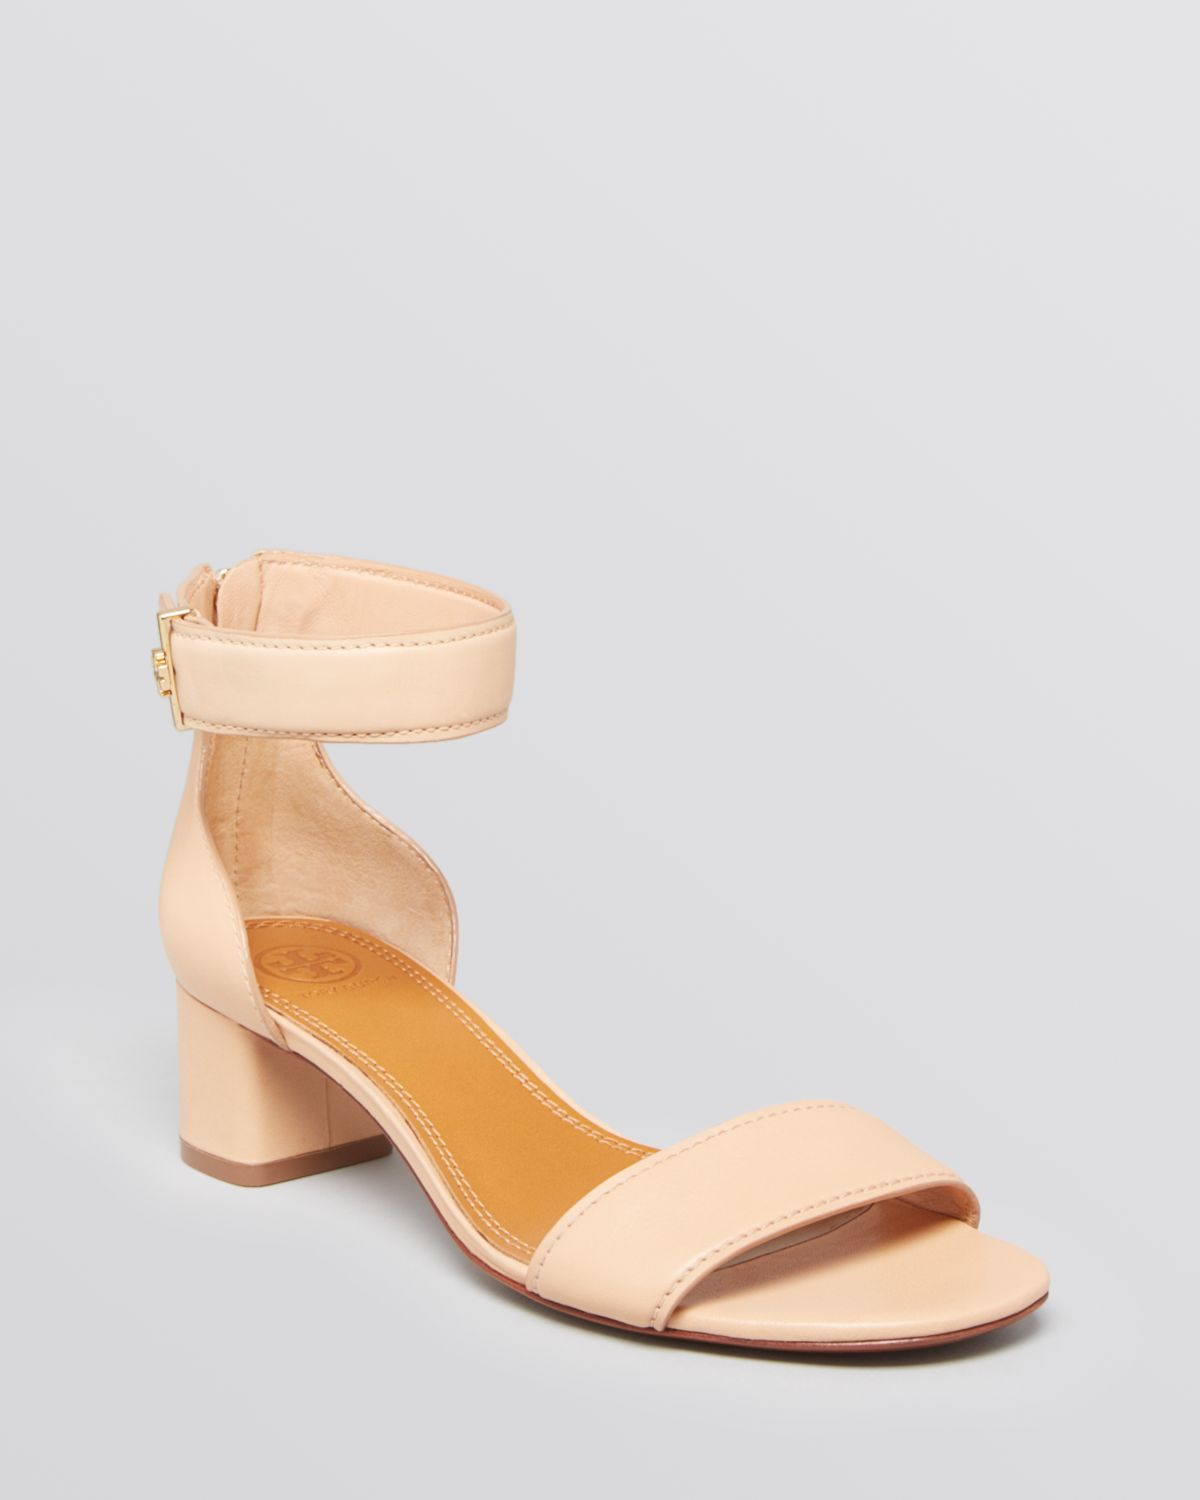 Lyst - Tory Burch Ankle Strap Sandals Tana Block Heel in Pink